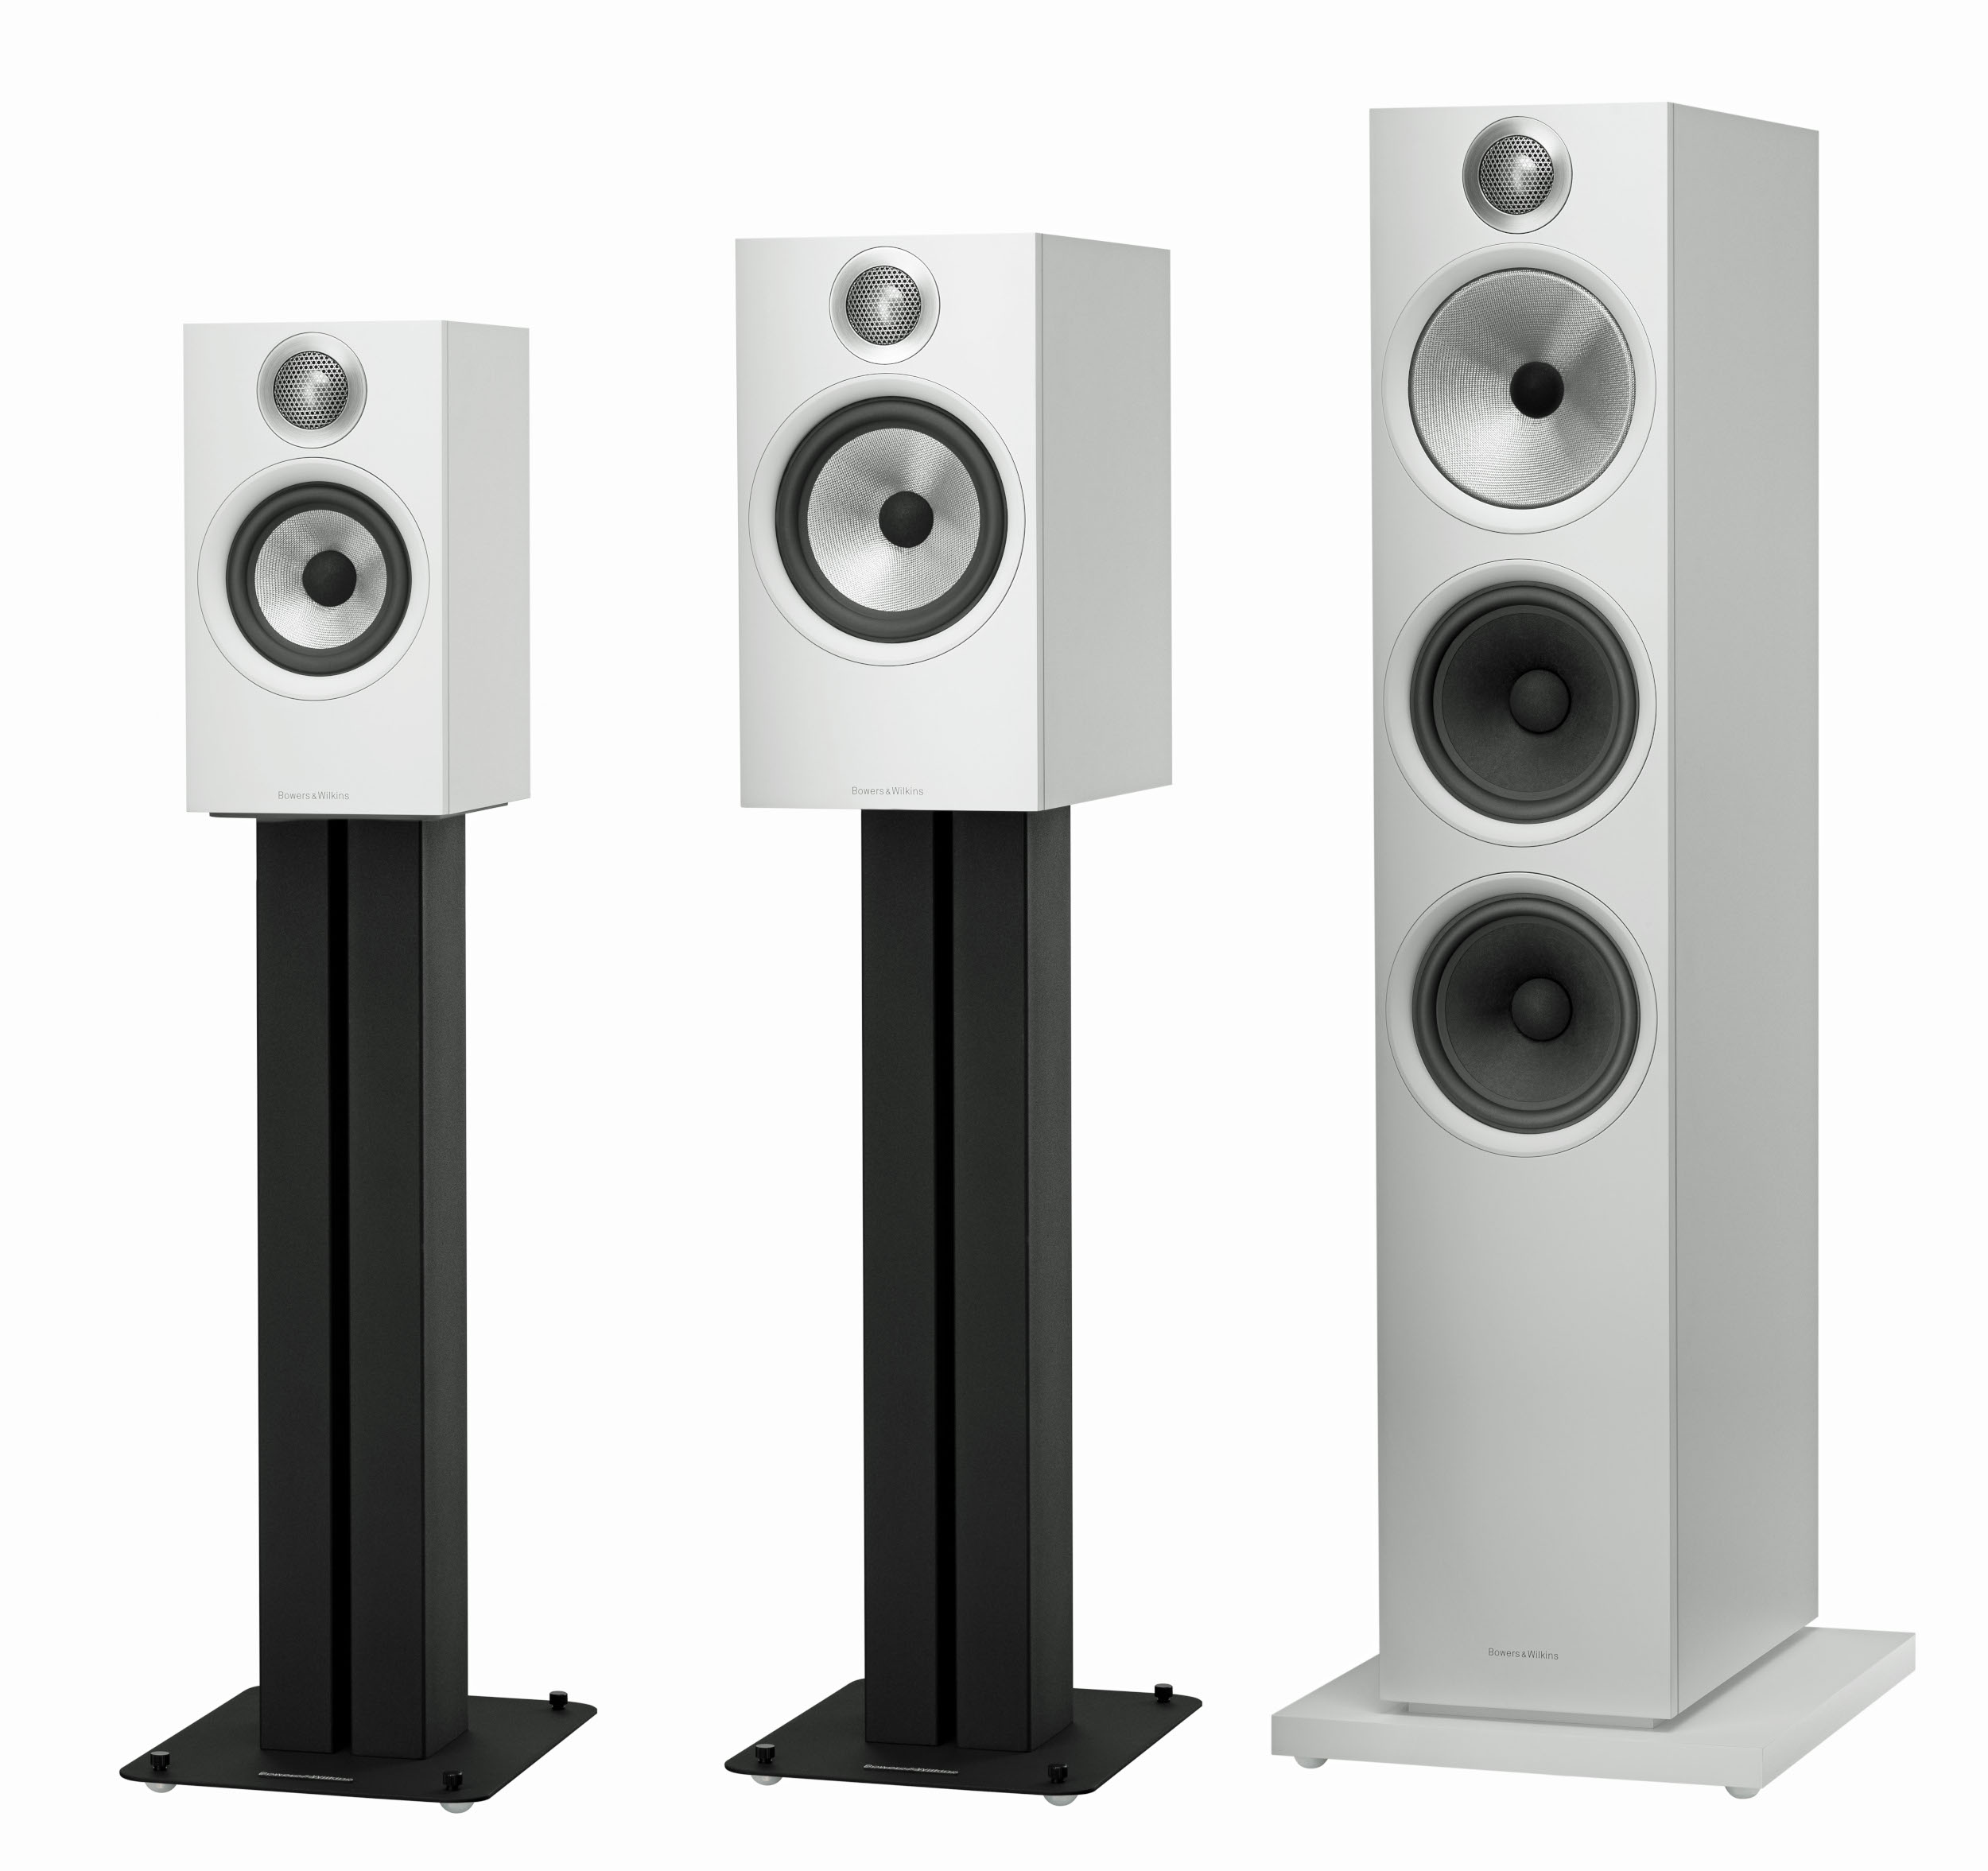 600 Series angle white New Bowers and Wilkins 600 Series Speakers Set To Ignite Sound Market